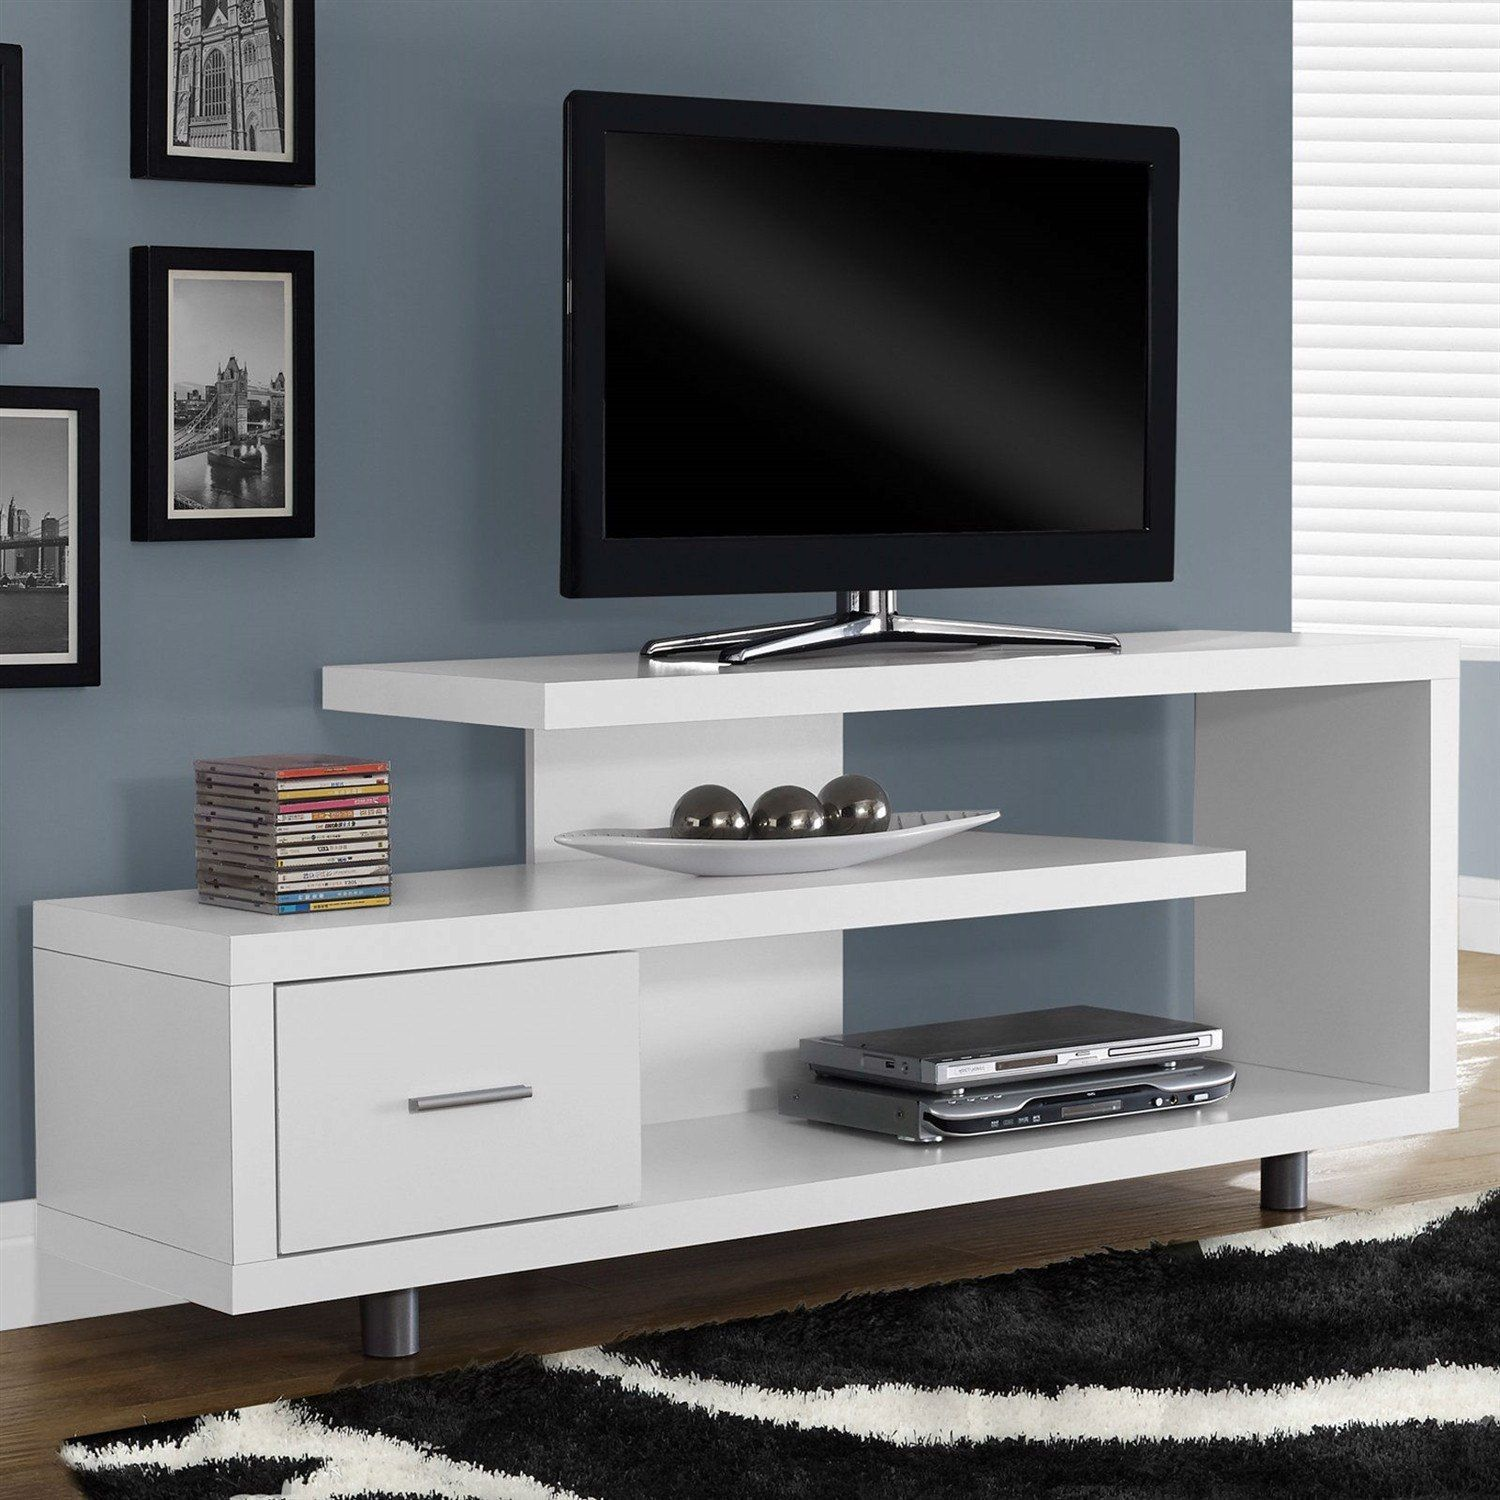 white modern tv stand  fits up to inch flat screen tv. white modern tv stand  fits up to inch flat screen tv  flat